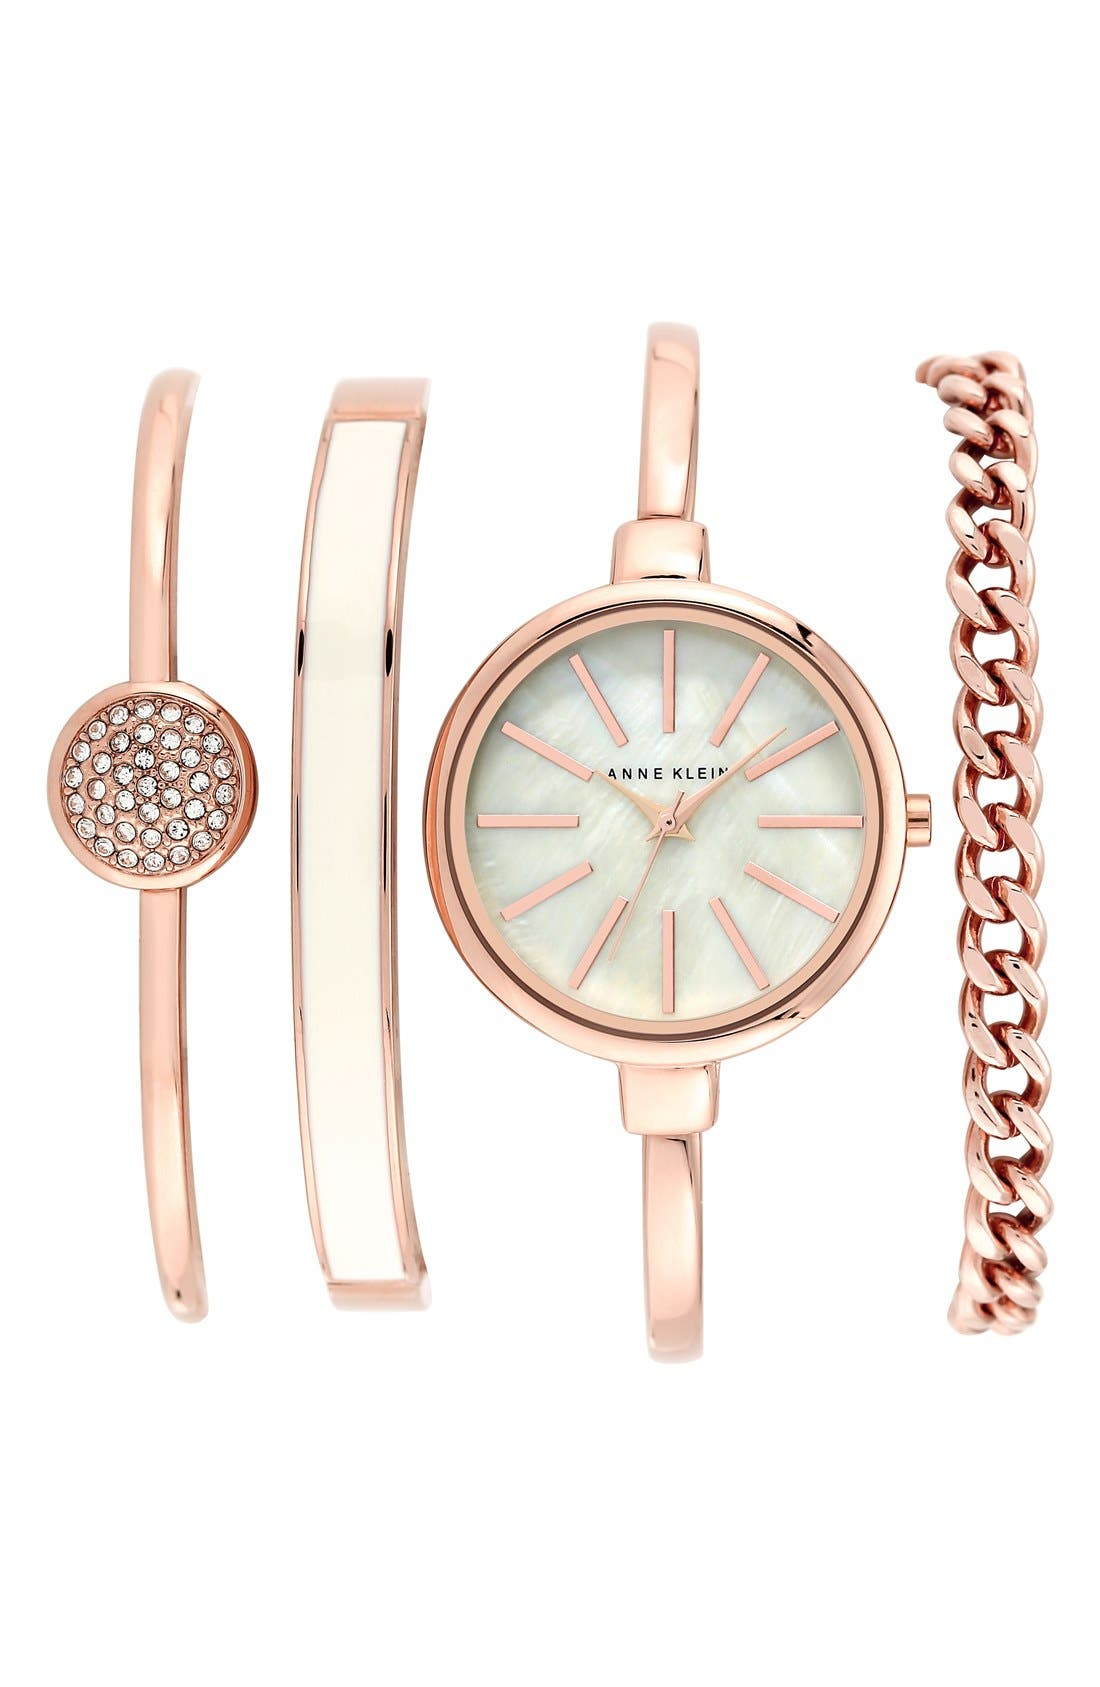 ANNE KLEIN Round Watch & Bangle Set, 32Mm in Rose Gold/ Ivory